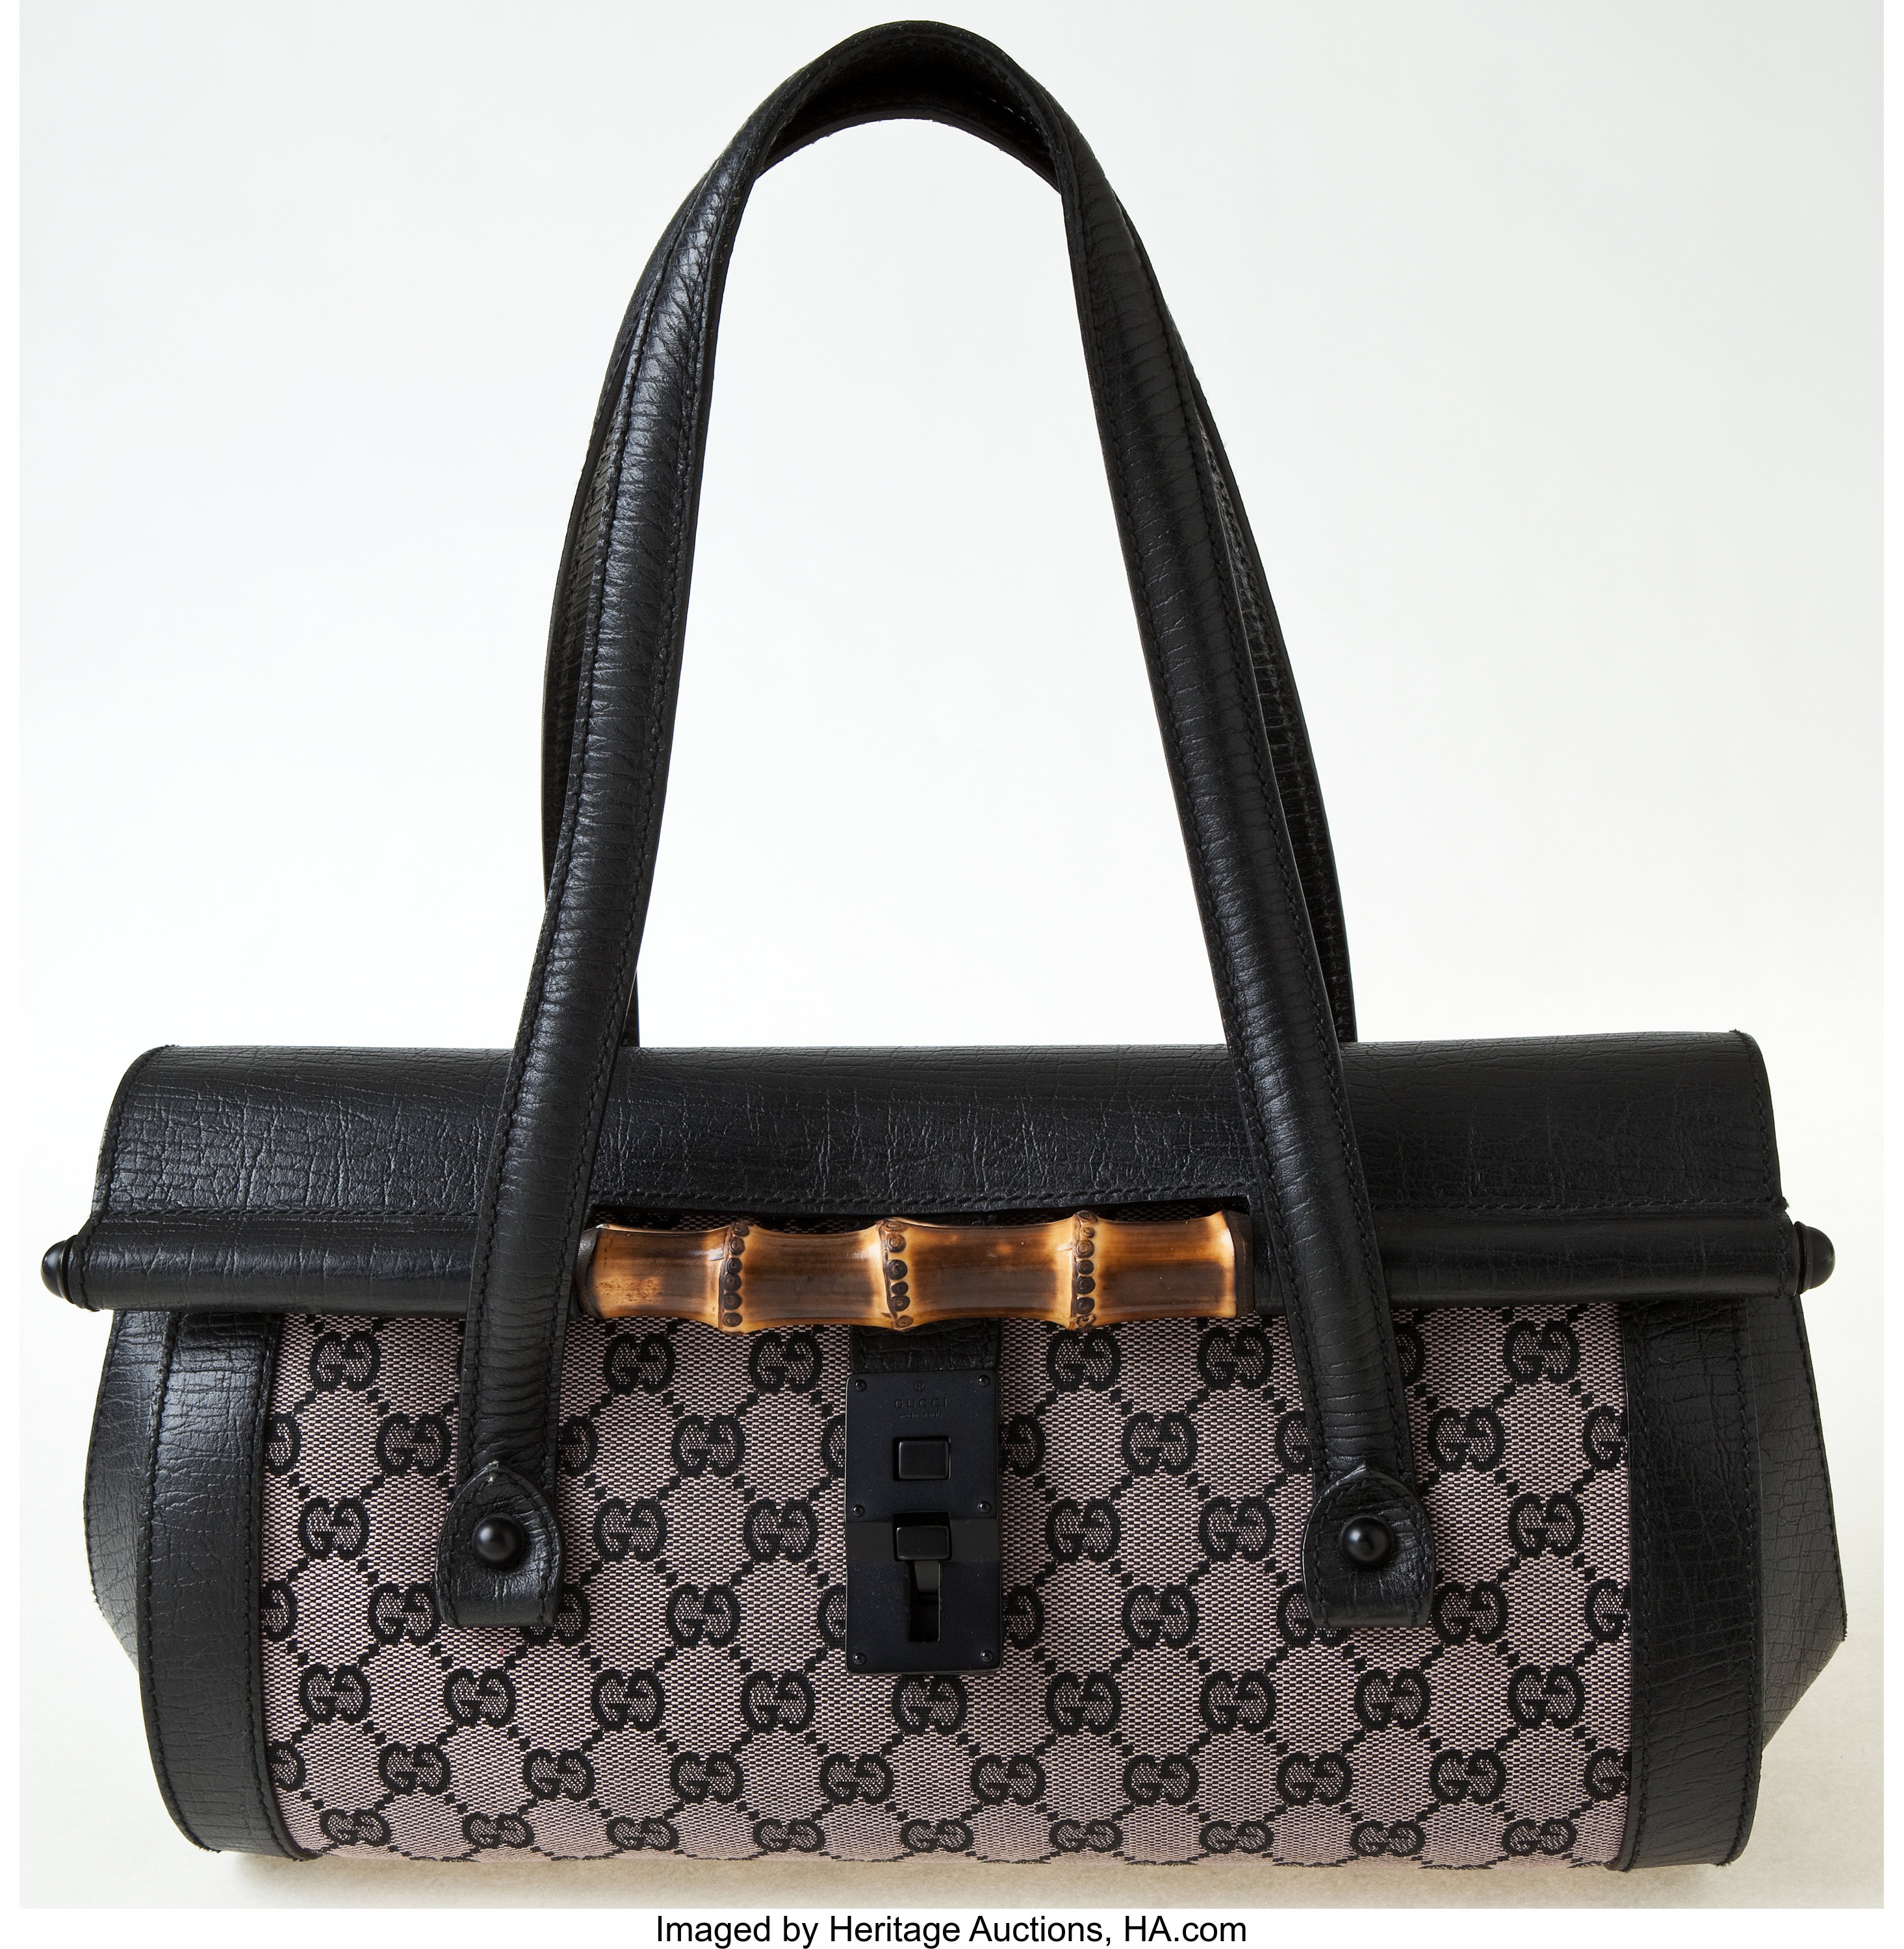 11324c0f5 Heritage Vintage: Gucci Monogram and Leather Shoulder Bag with | Lot #77010  | Heritage Auctions